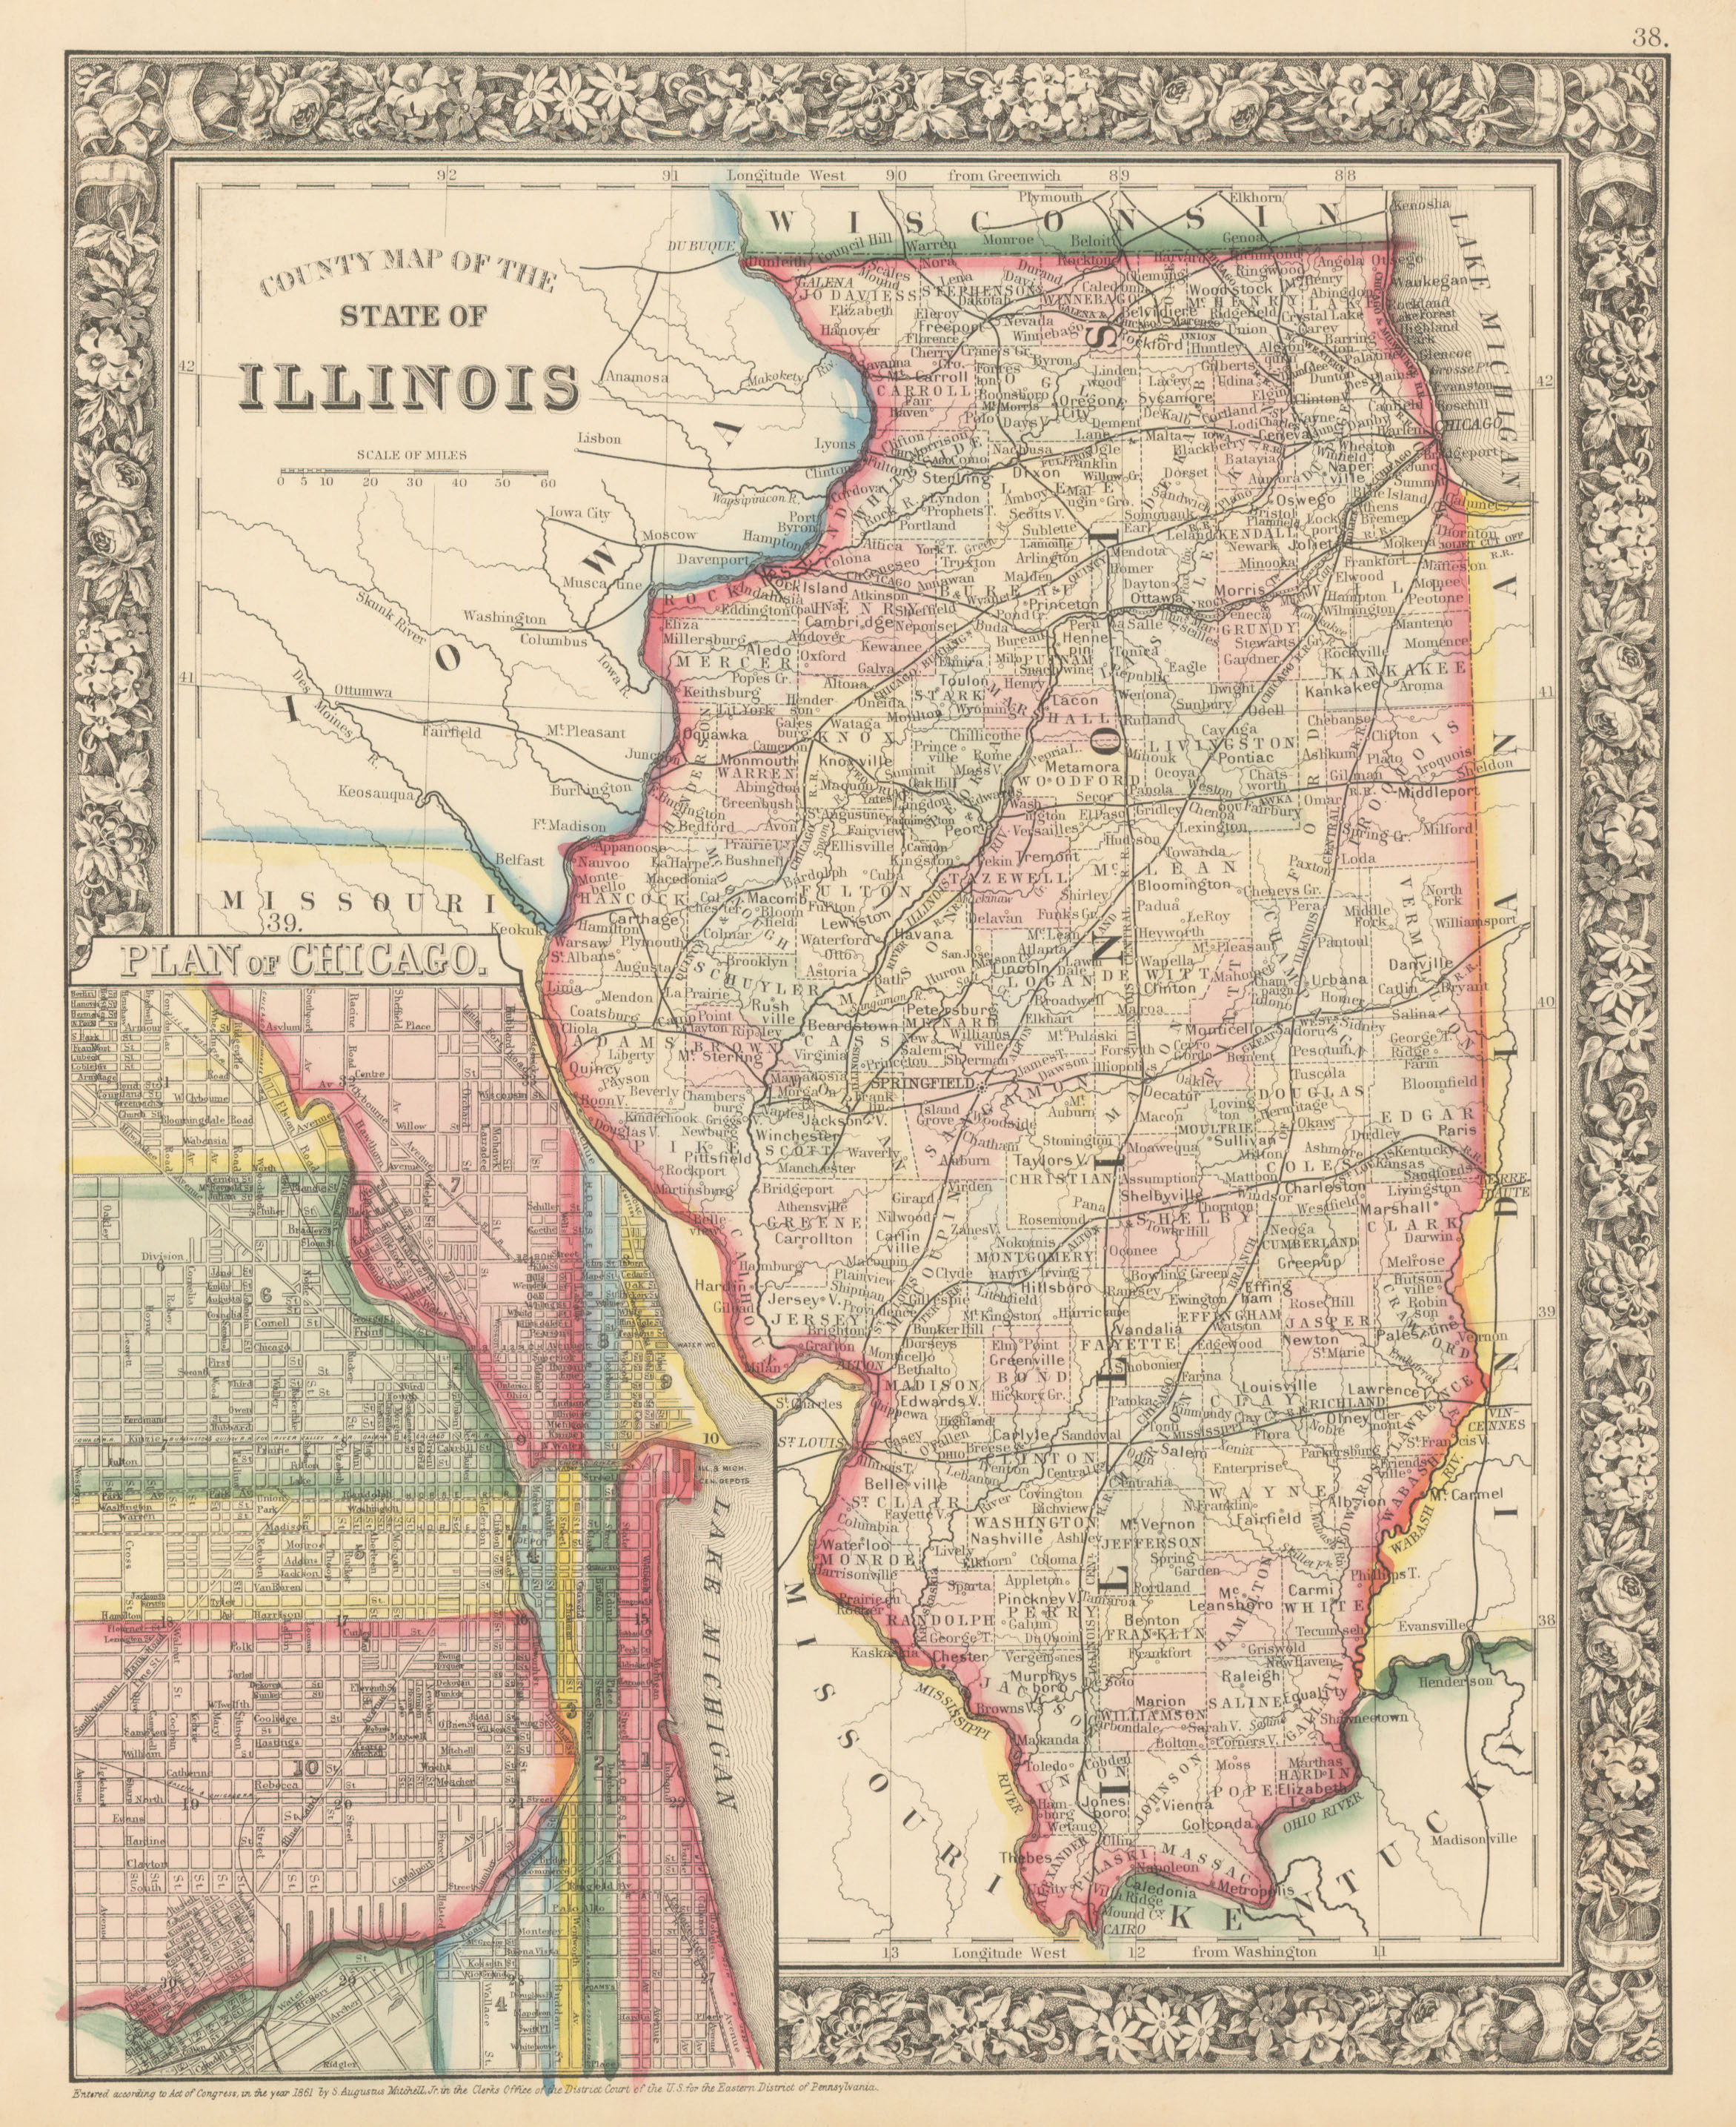 Antique Map of Illinois Chicago By Mitchell 1860 HJBMapscom